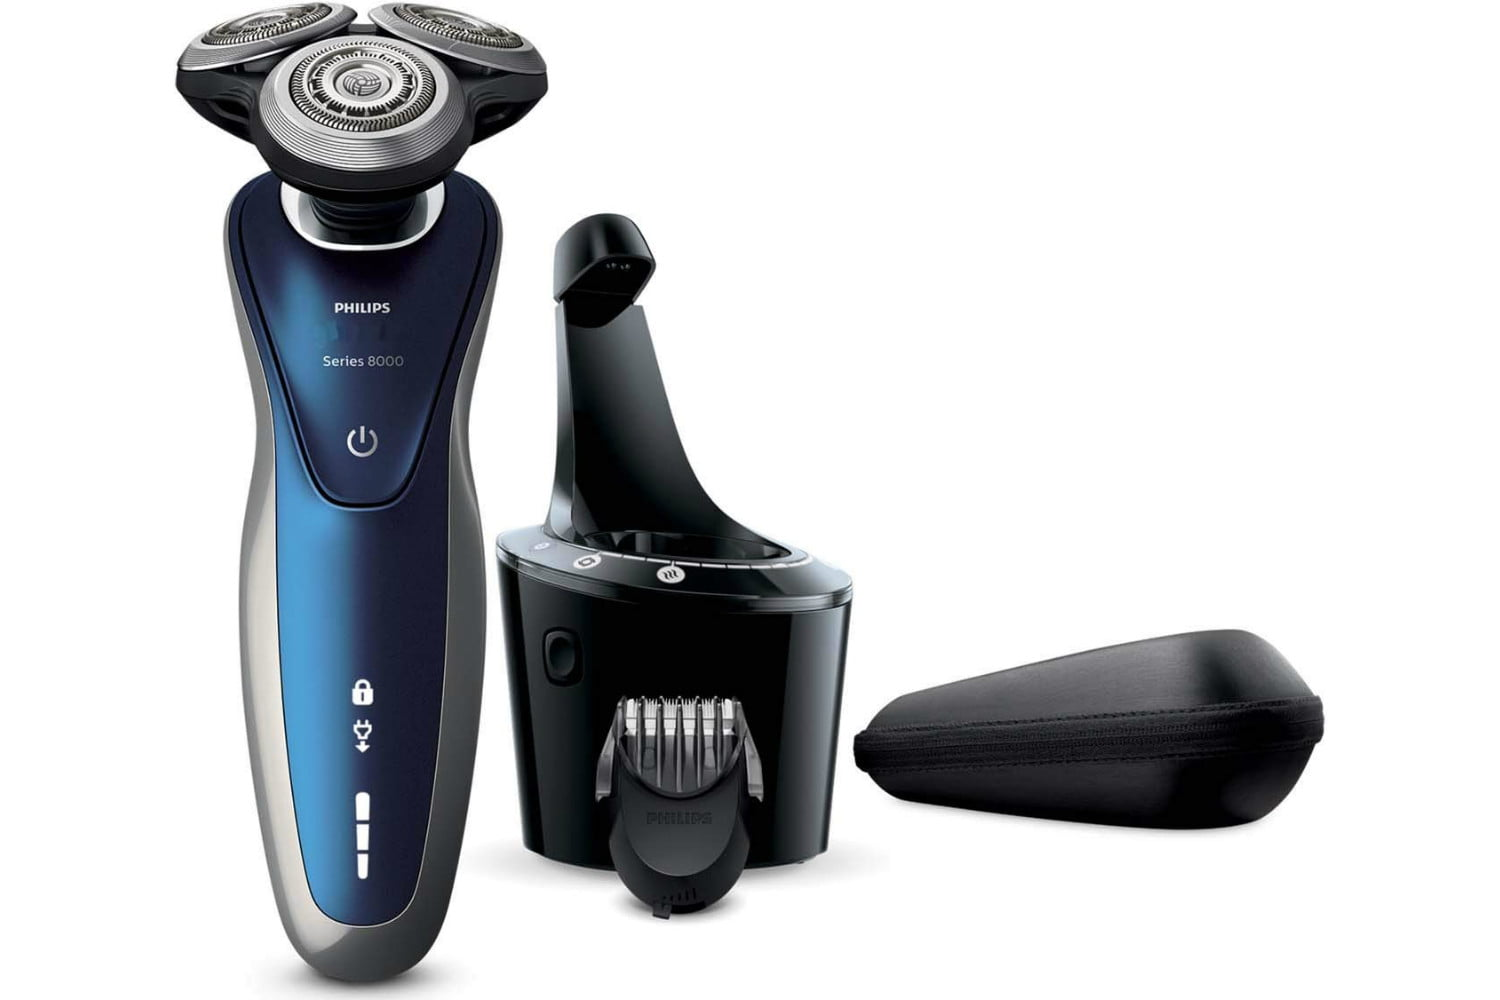 amazon trims philips norelco 8900 wet and dry electric shaver with smartclean  edition s8950 90 750x500